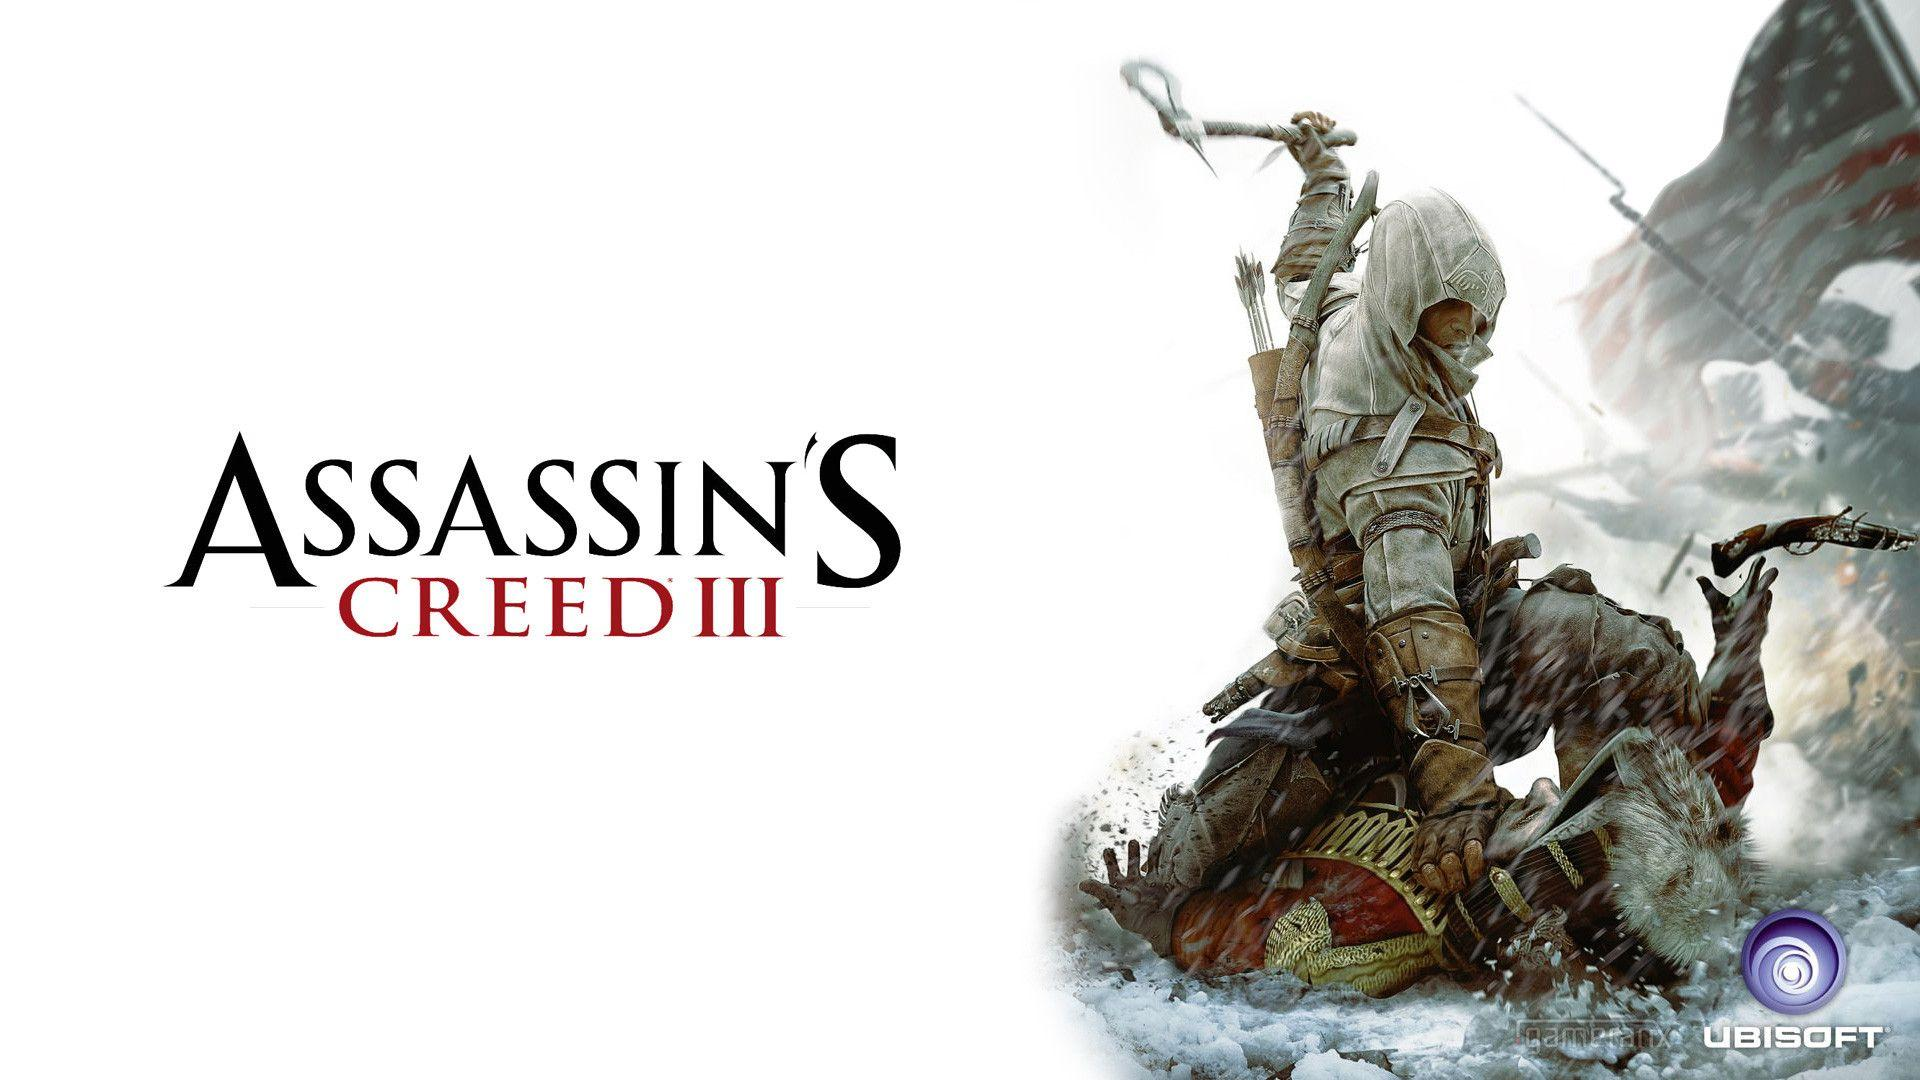 Assassin&Creed 3 Wallpapers in HD